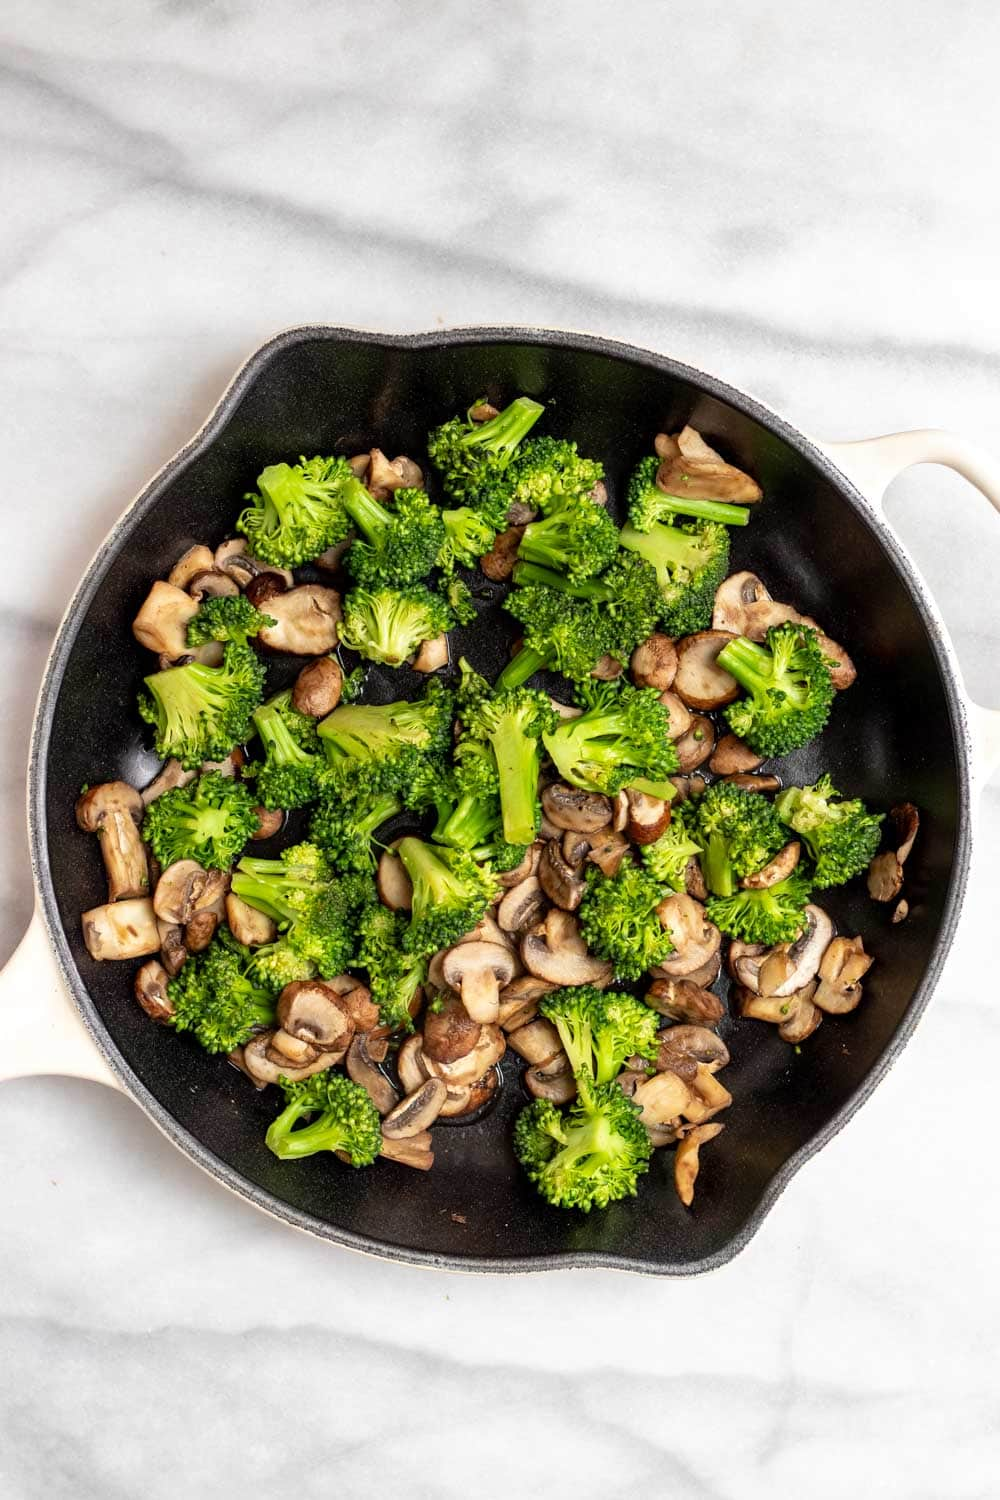 Mushrooms and broccoli sauteing in a pan.